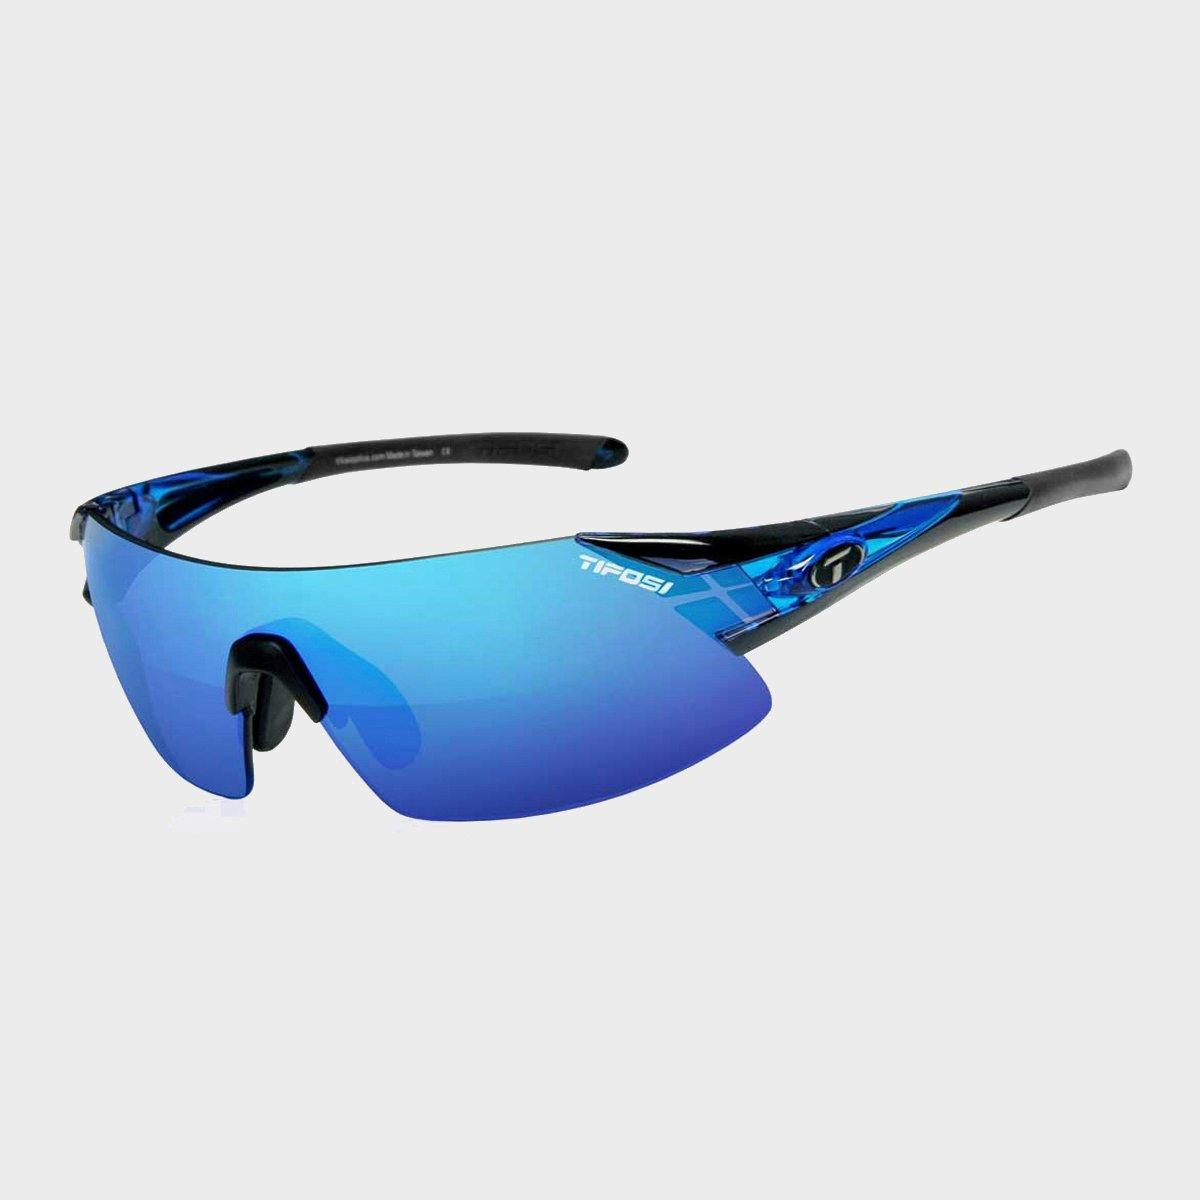 Tifosi Podium XC Sunglasses, Blue